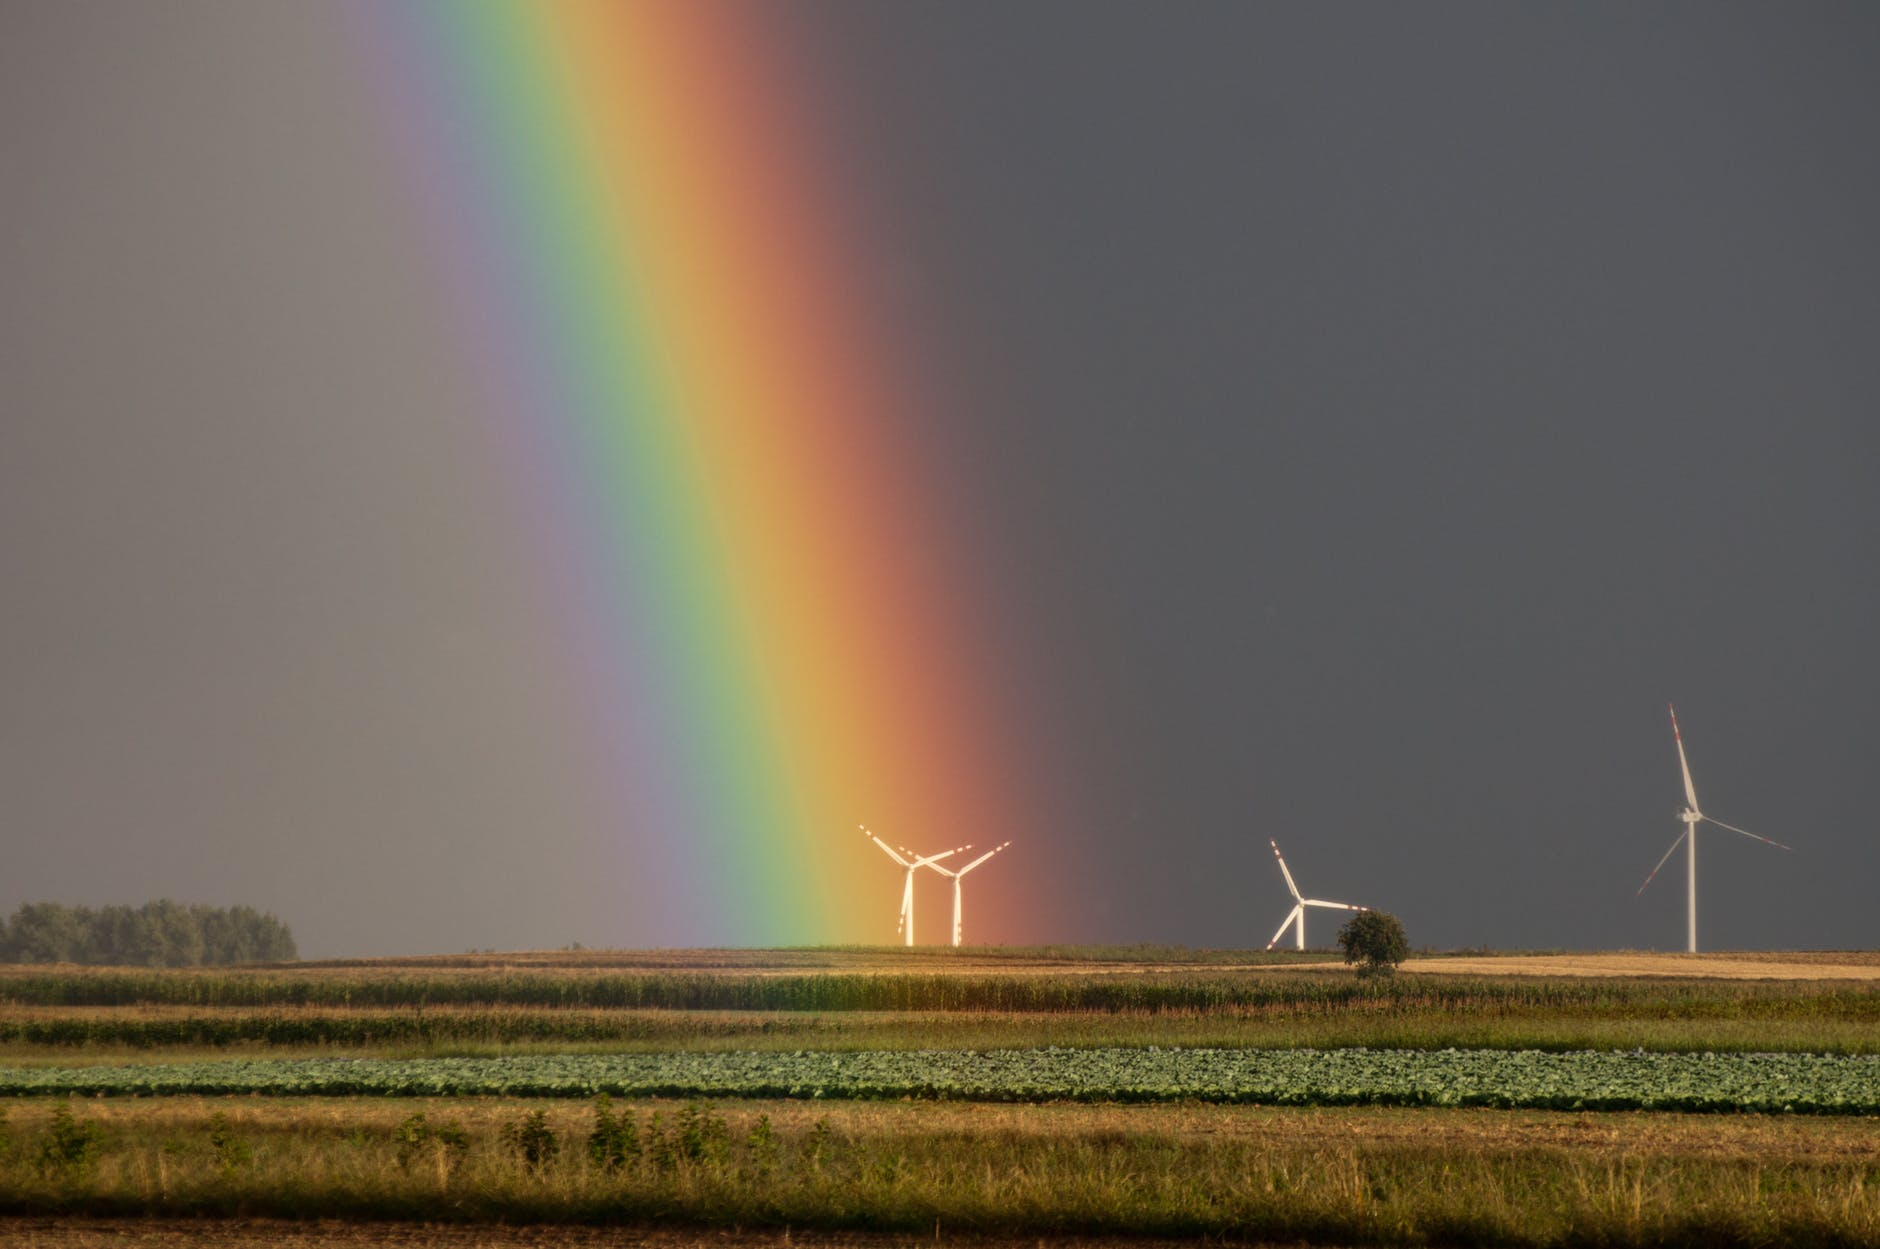 landscape photography of field with wind mill with rainbow